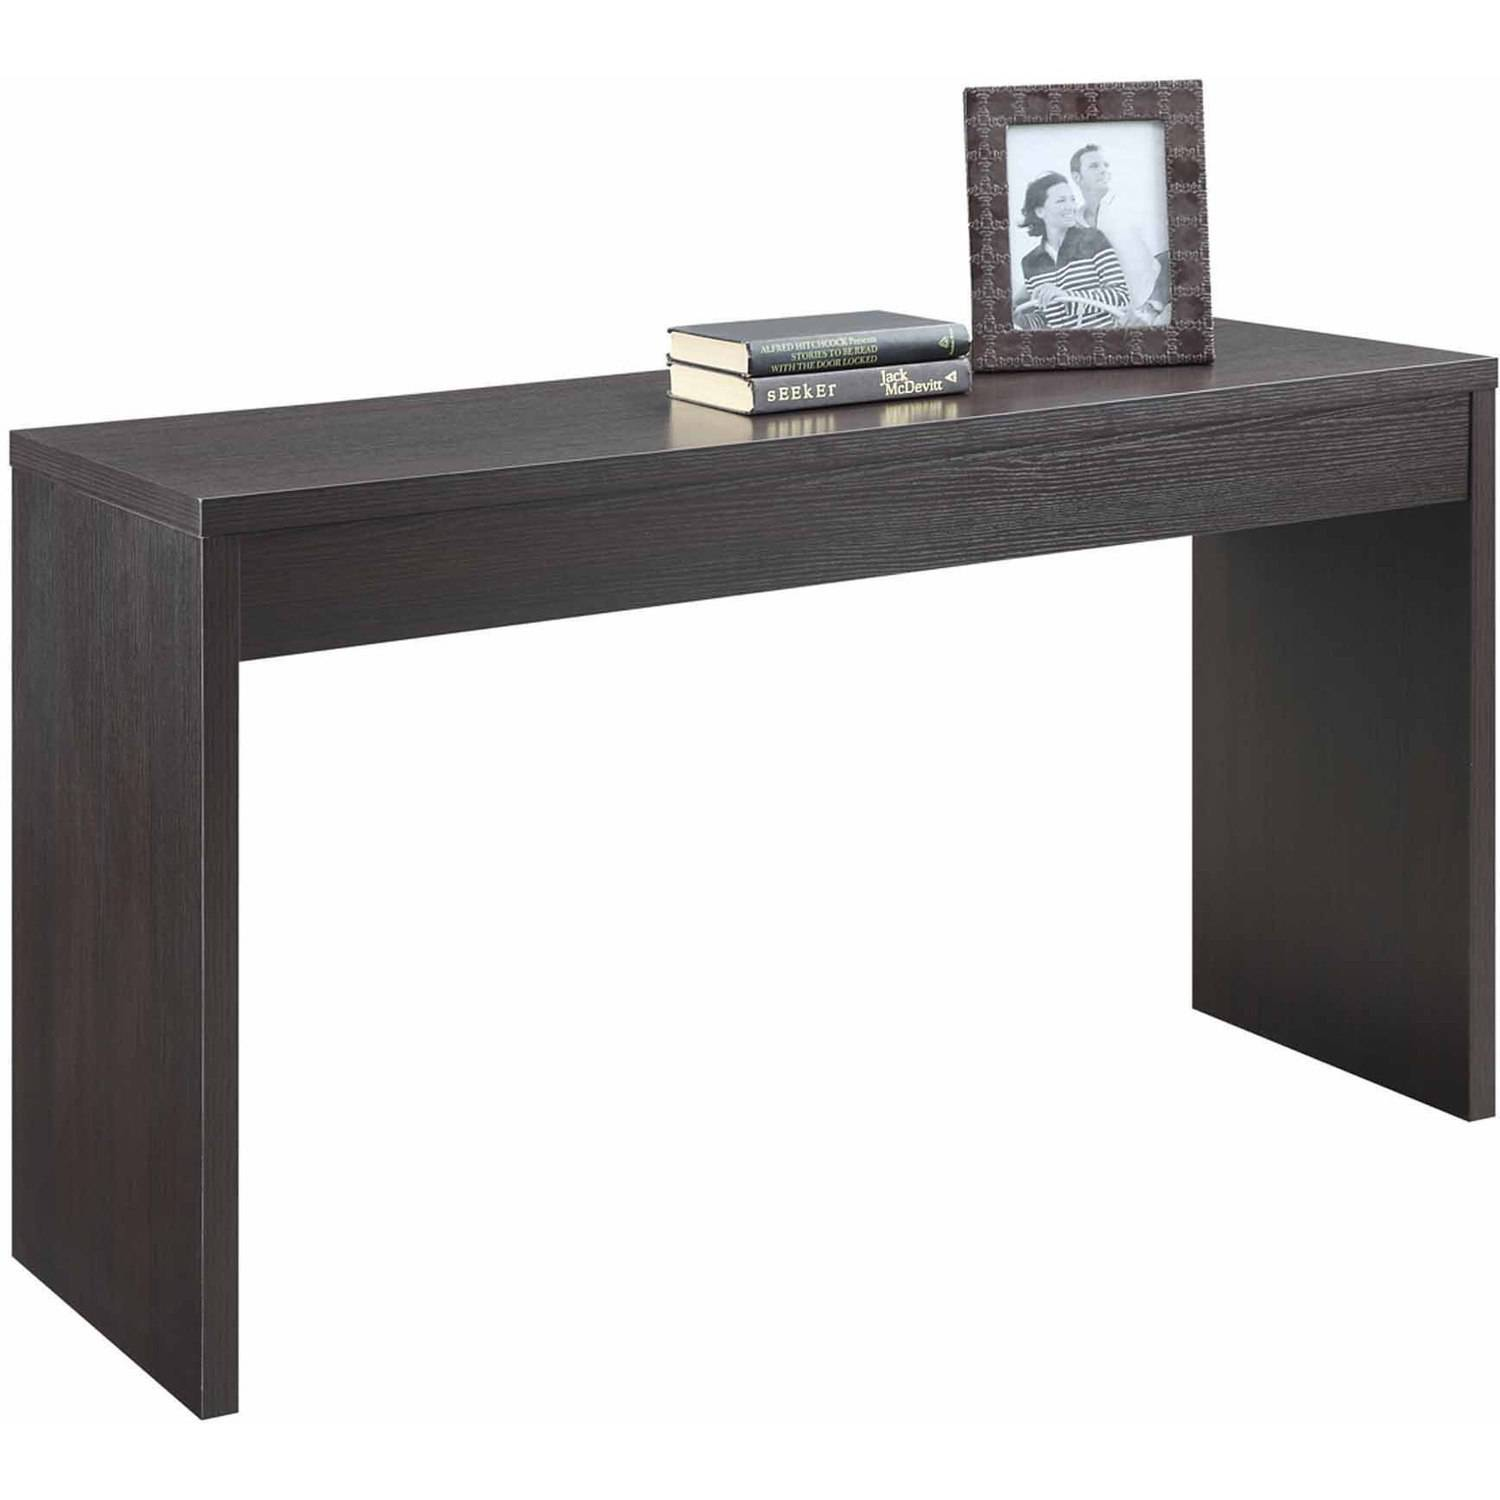 Convenience concepts northfield hallway console table mutilple convenience concepts northfield hallway console table mutilple colors walmart geotapseo Choice Image